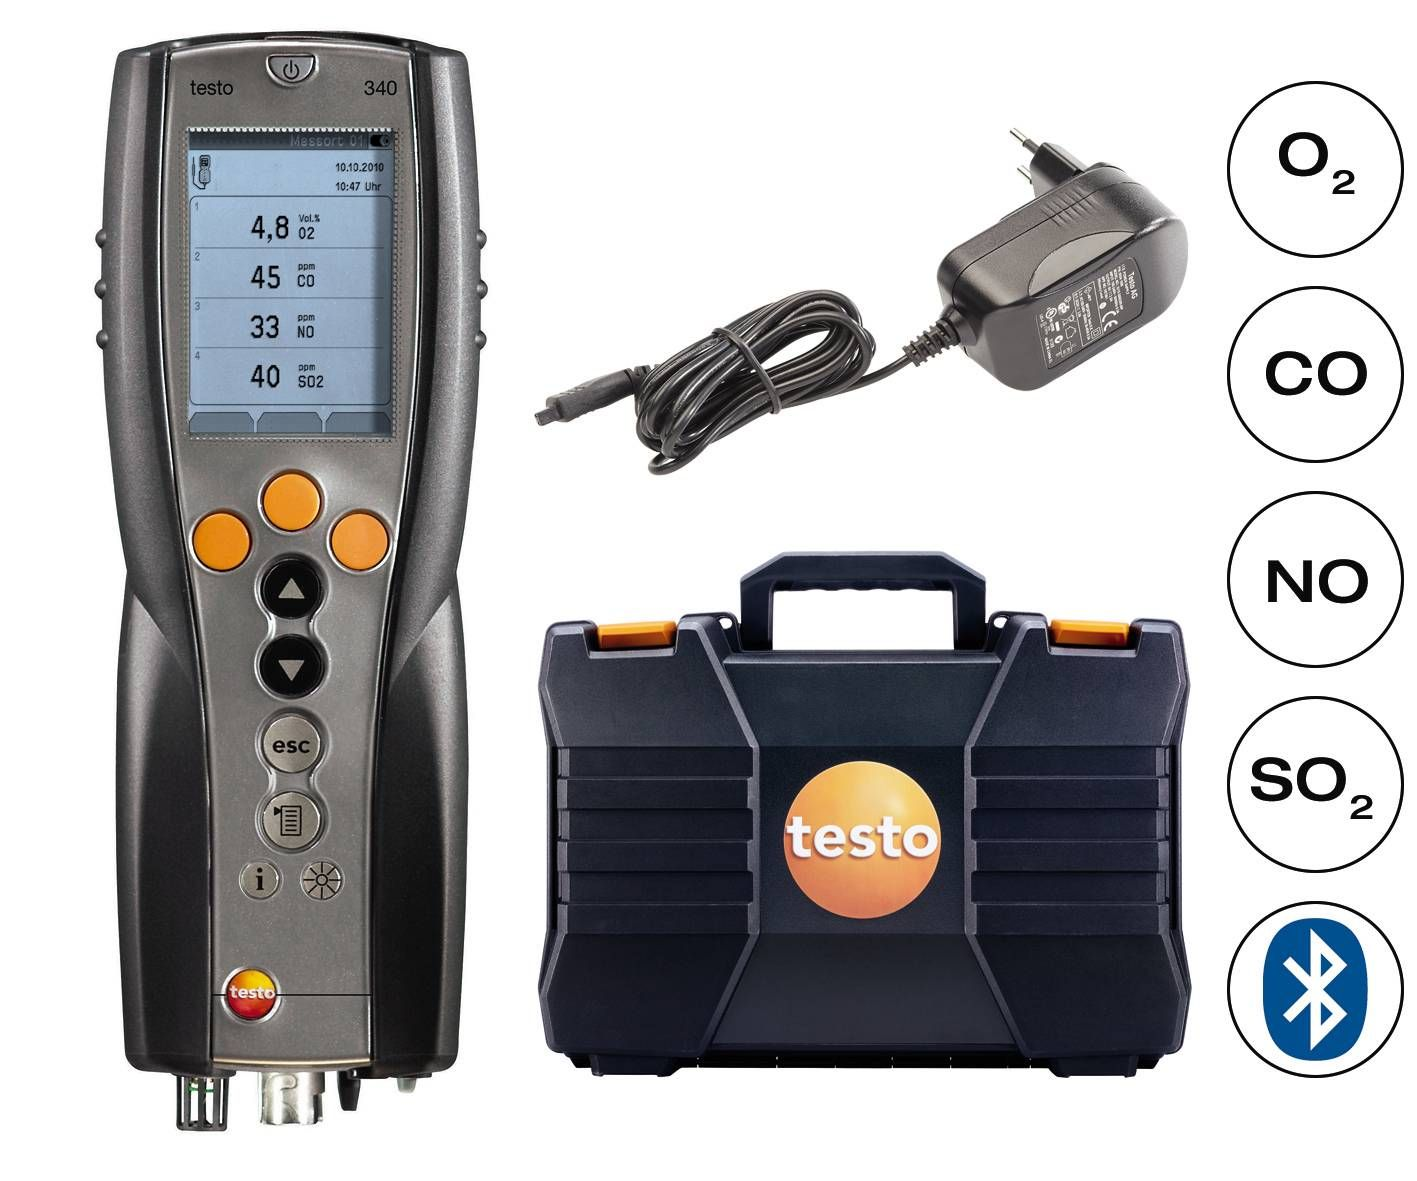 Testo 340 SO2 Kit Image.jpg